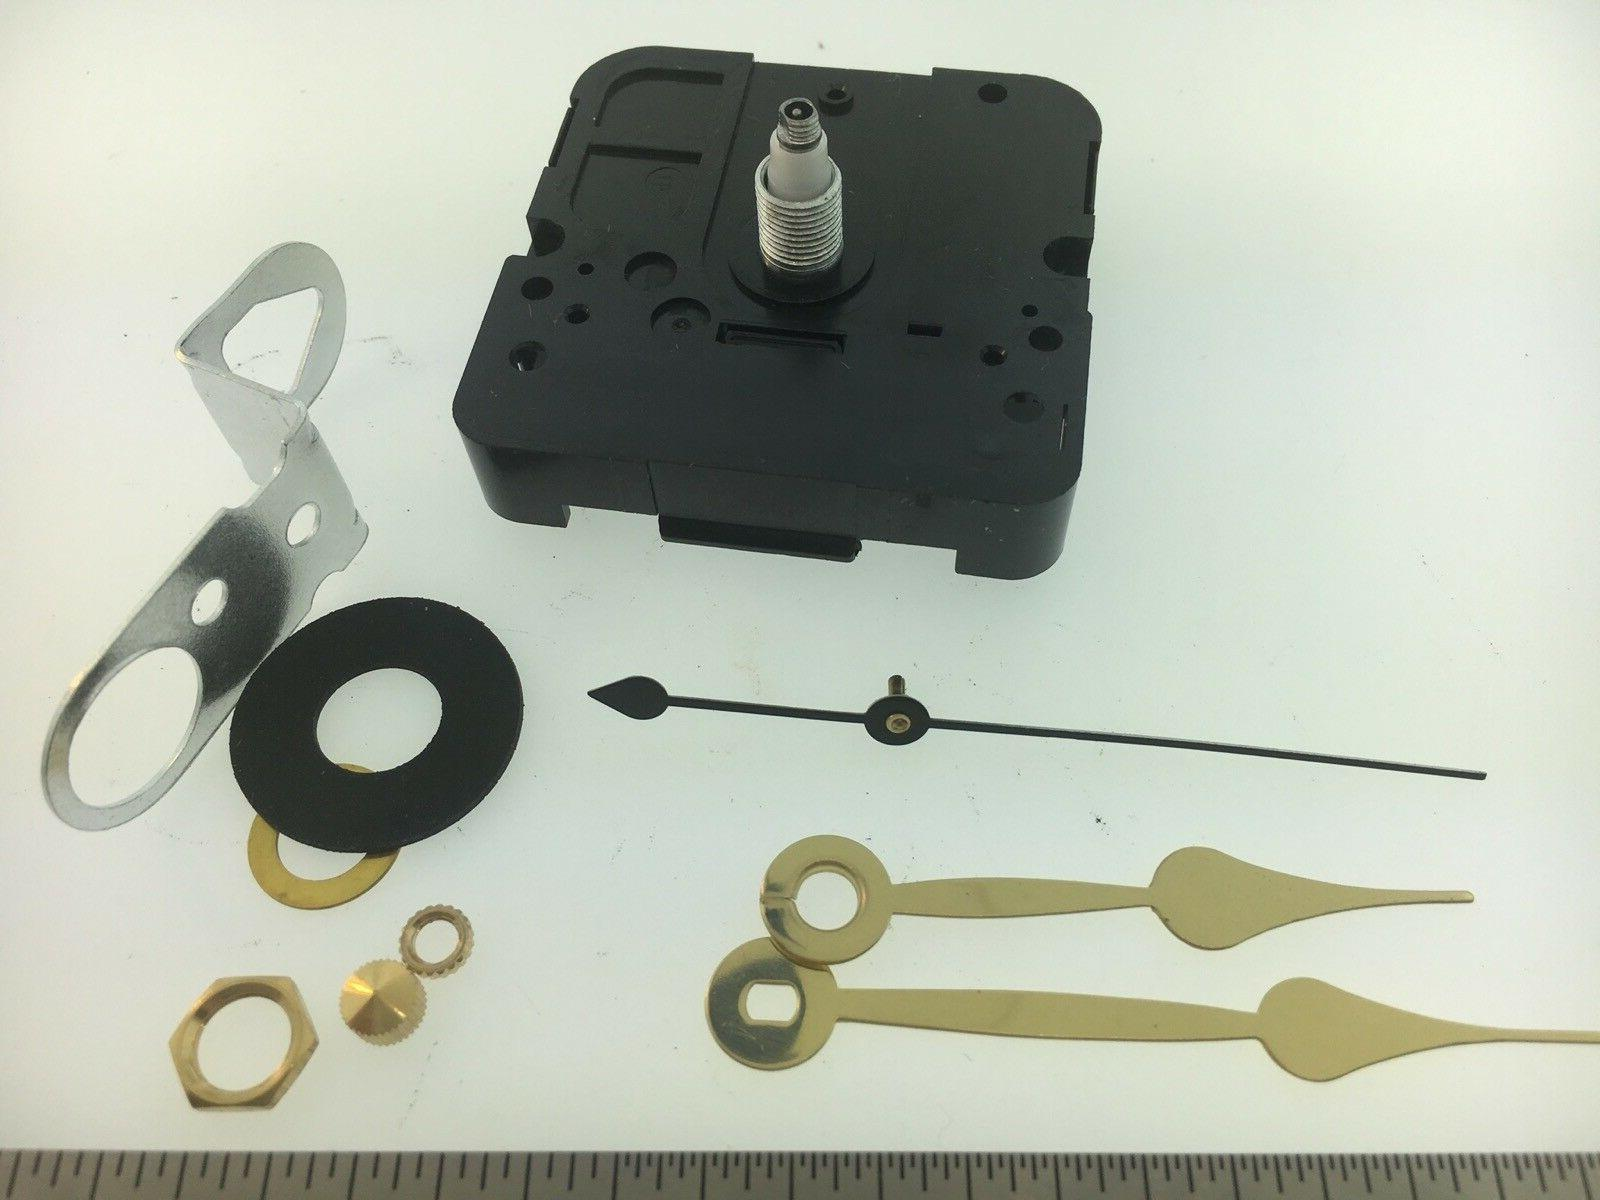 takane quartz battery clock movement with hands